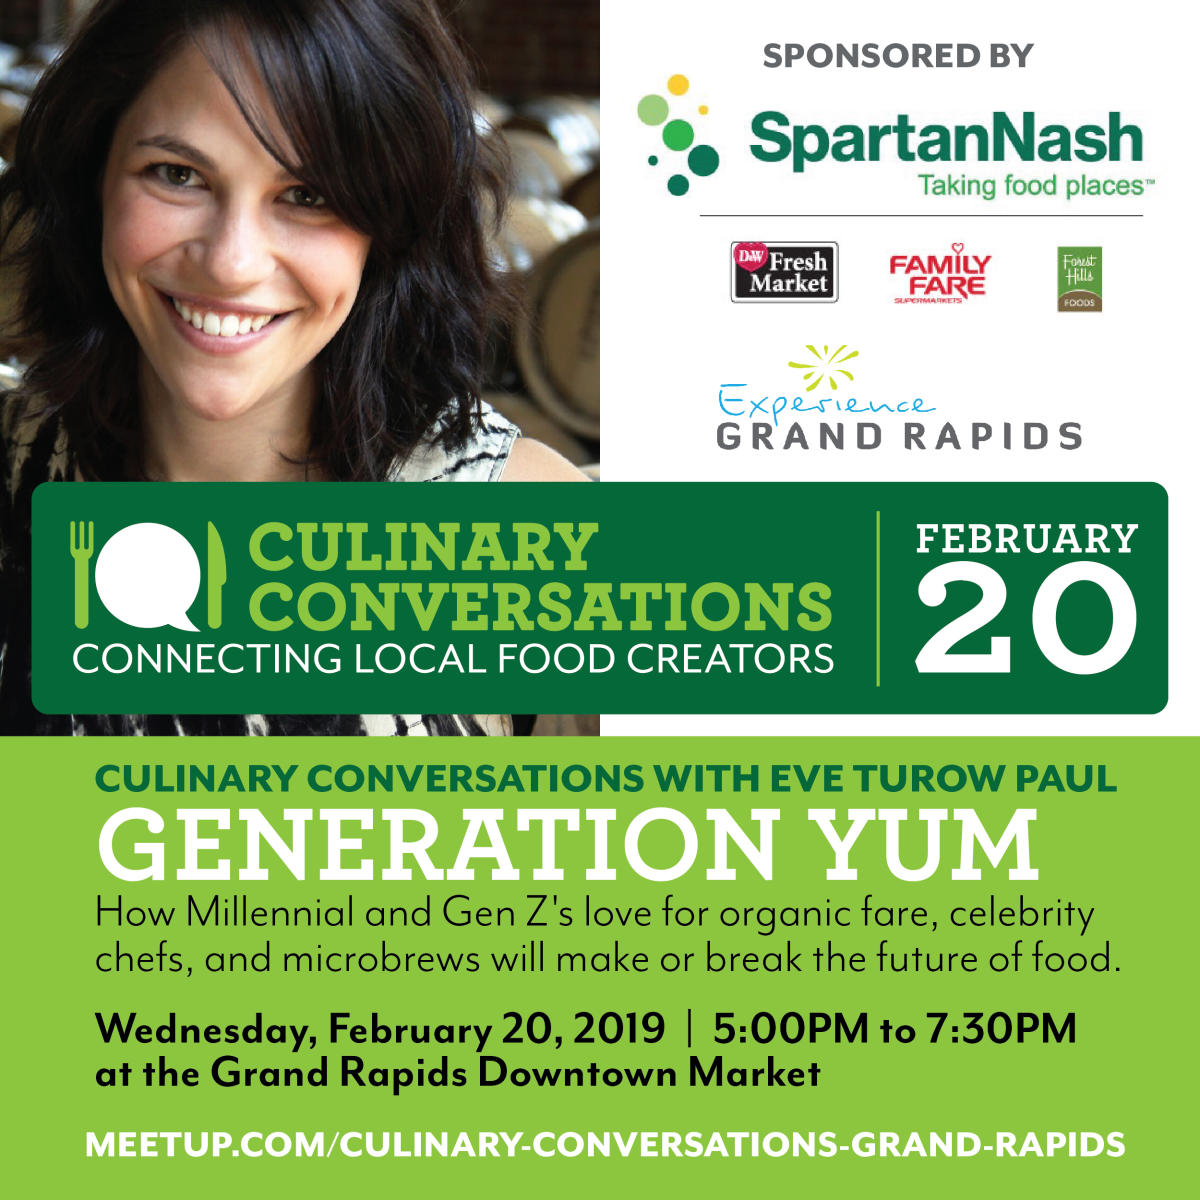 CULINARY CONVERSATIONS WITH EVE TUROW PAUL: GENERATION YUM | Lecture/Education in Grand Rapids, MI